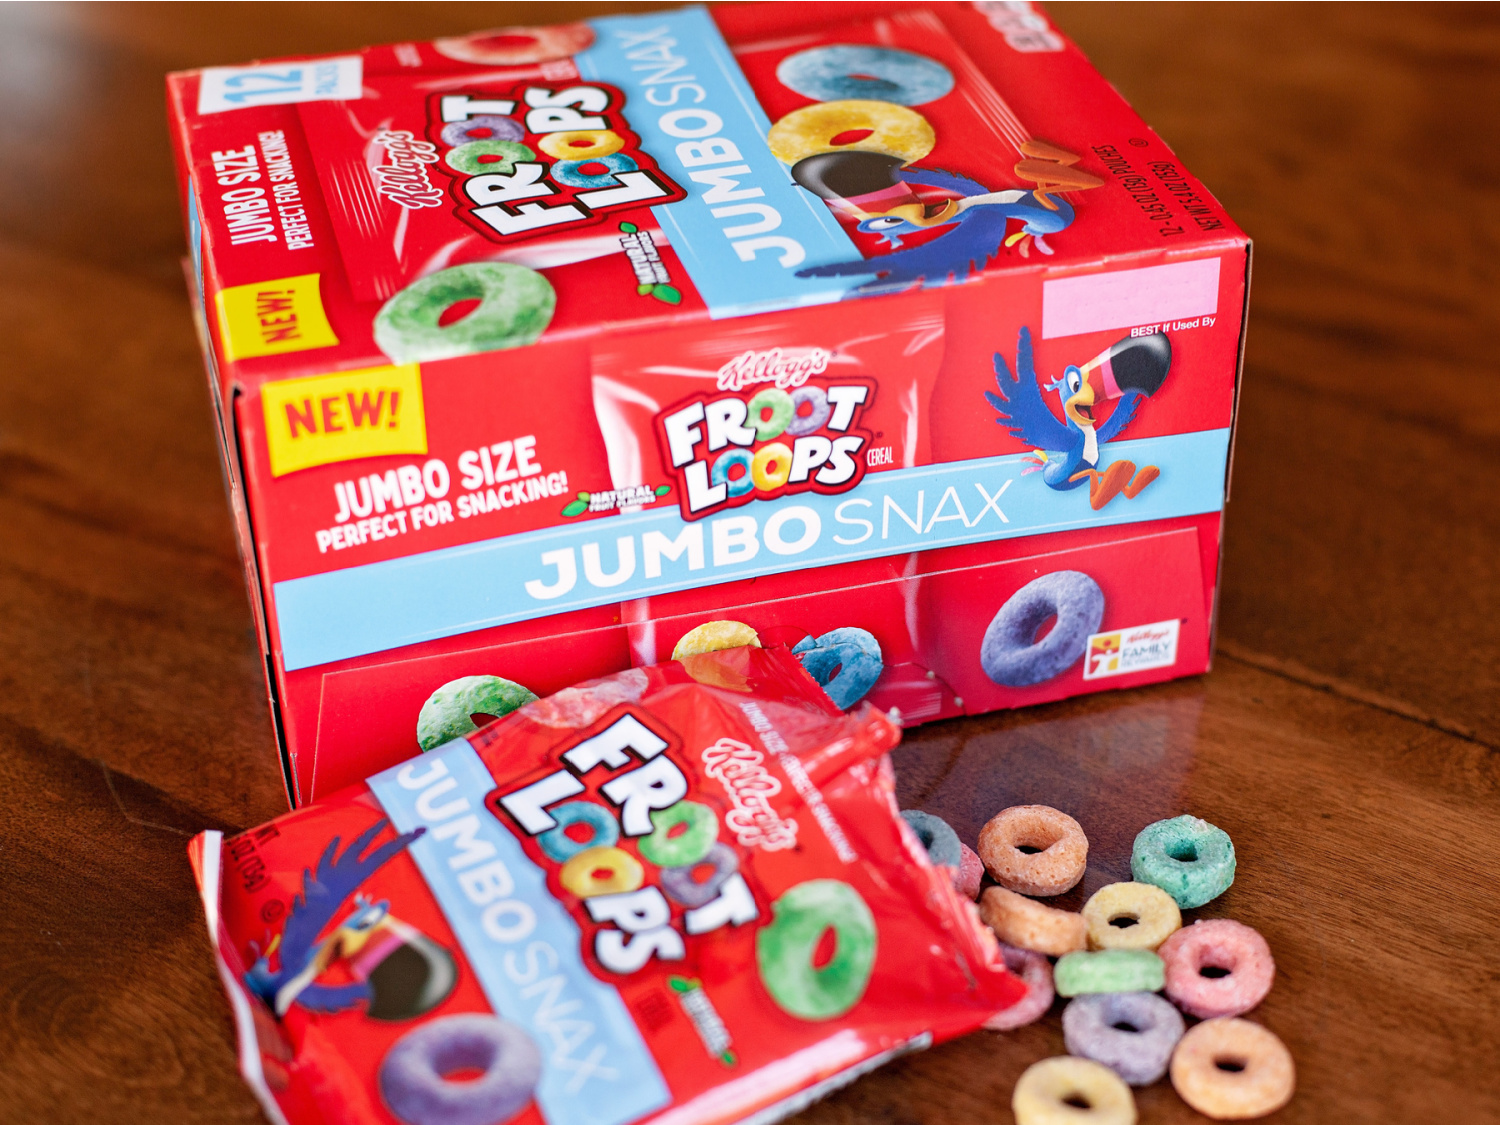 Kellogg's Jumbo Snax Just $2.05 Per Box (reg $5.49) on I Heart Publix 1